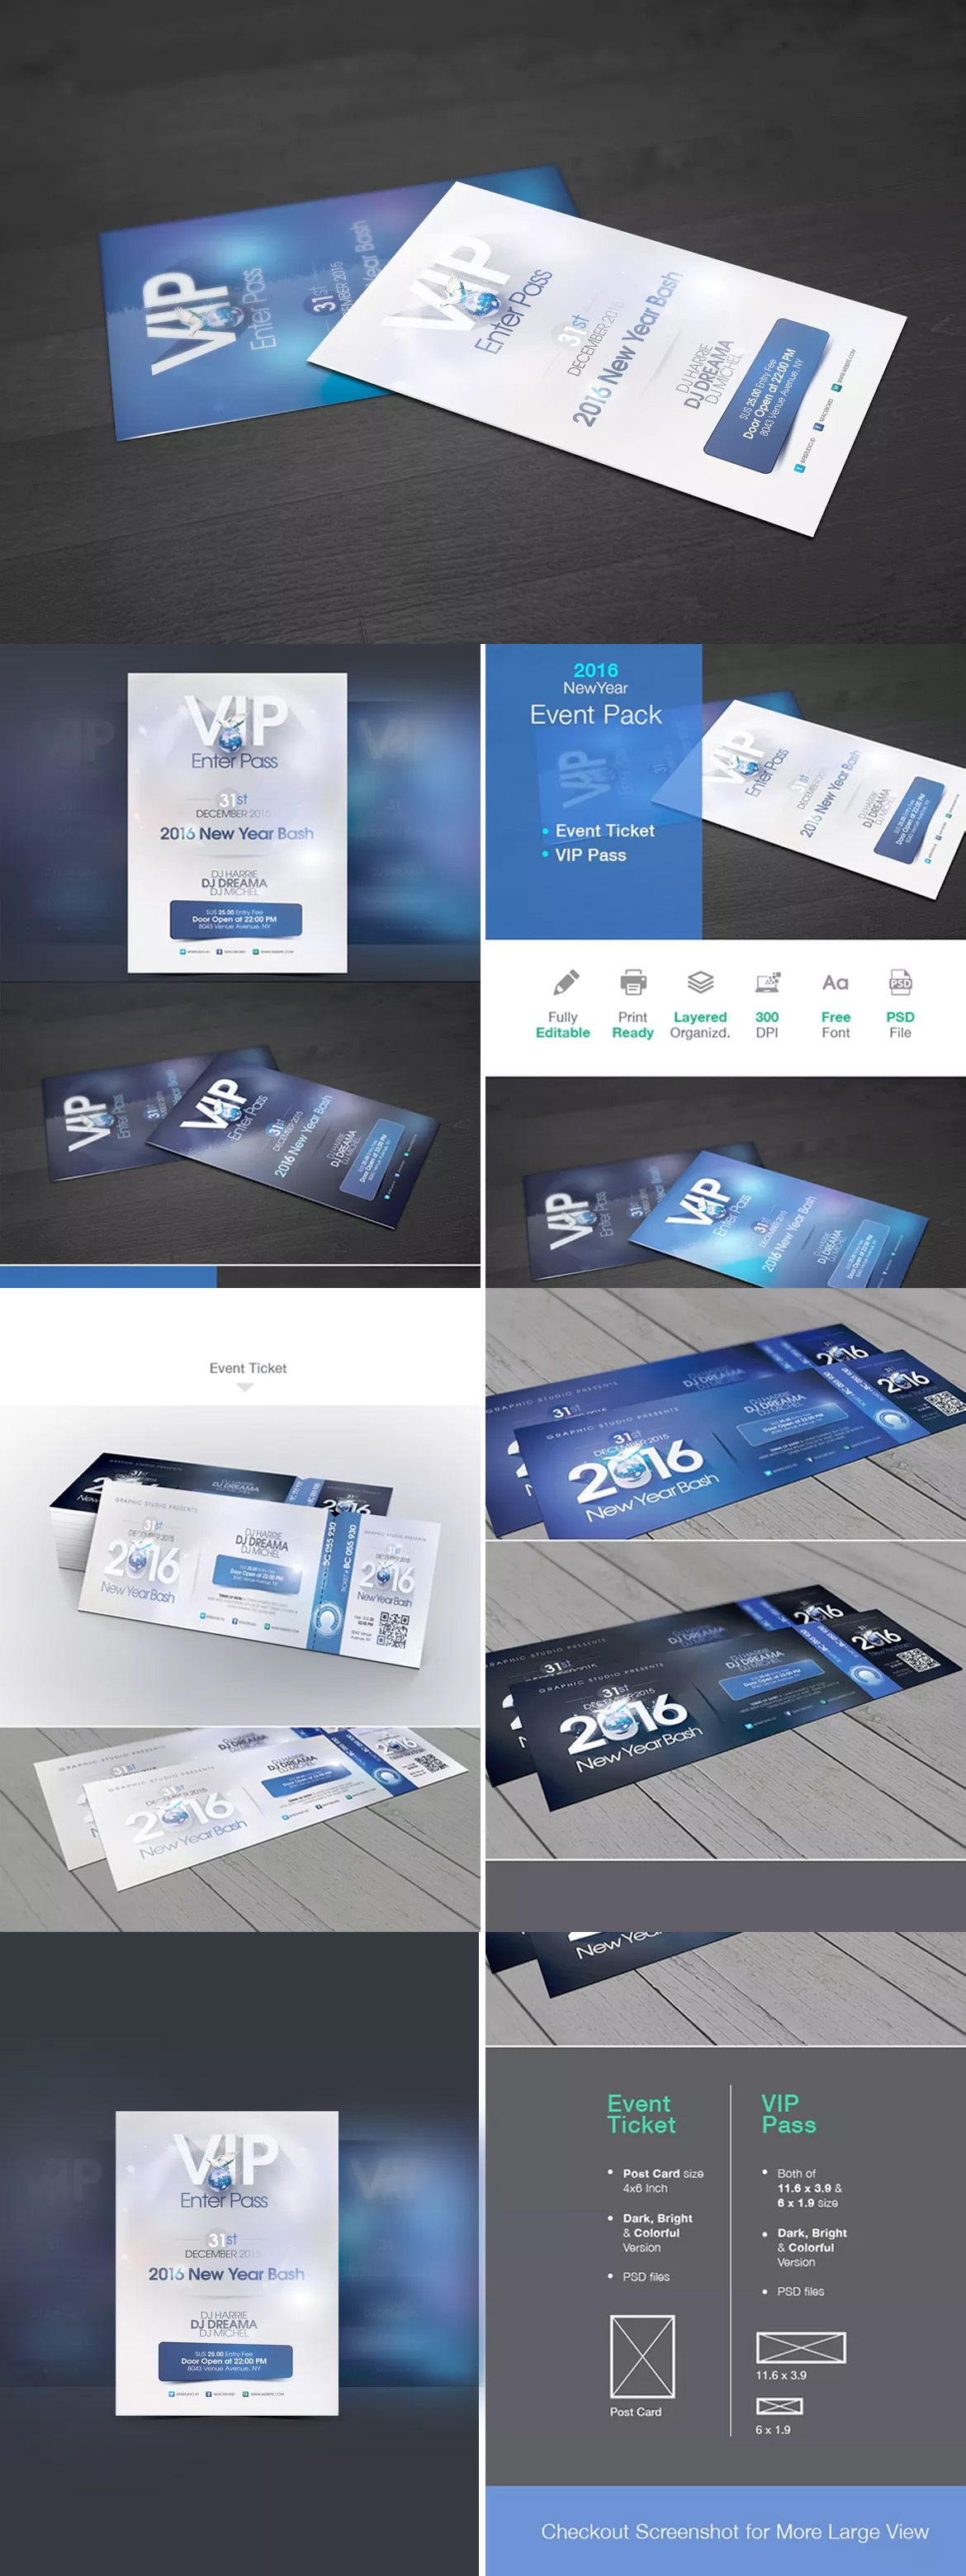 New Year Event Ticket & VIP Pass Template PSD | Event Ticket